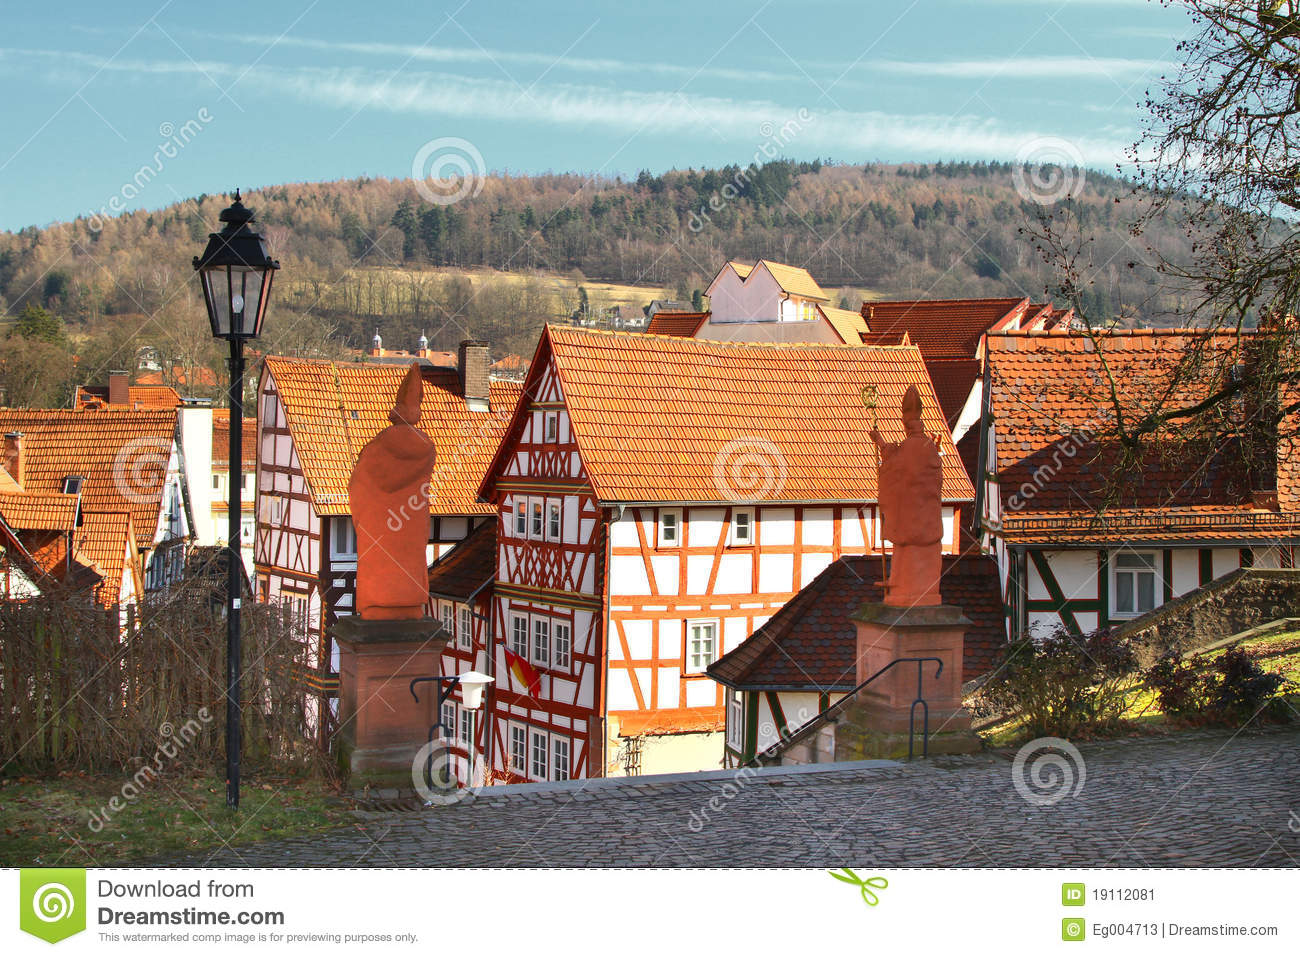 half timbered house near old castle wall royalty free stock image 20849524. Black Bedroom Furniture Sets. Home Design Ideas